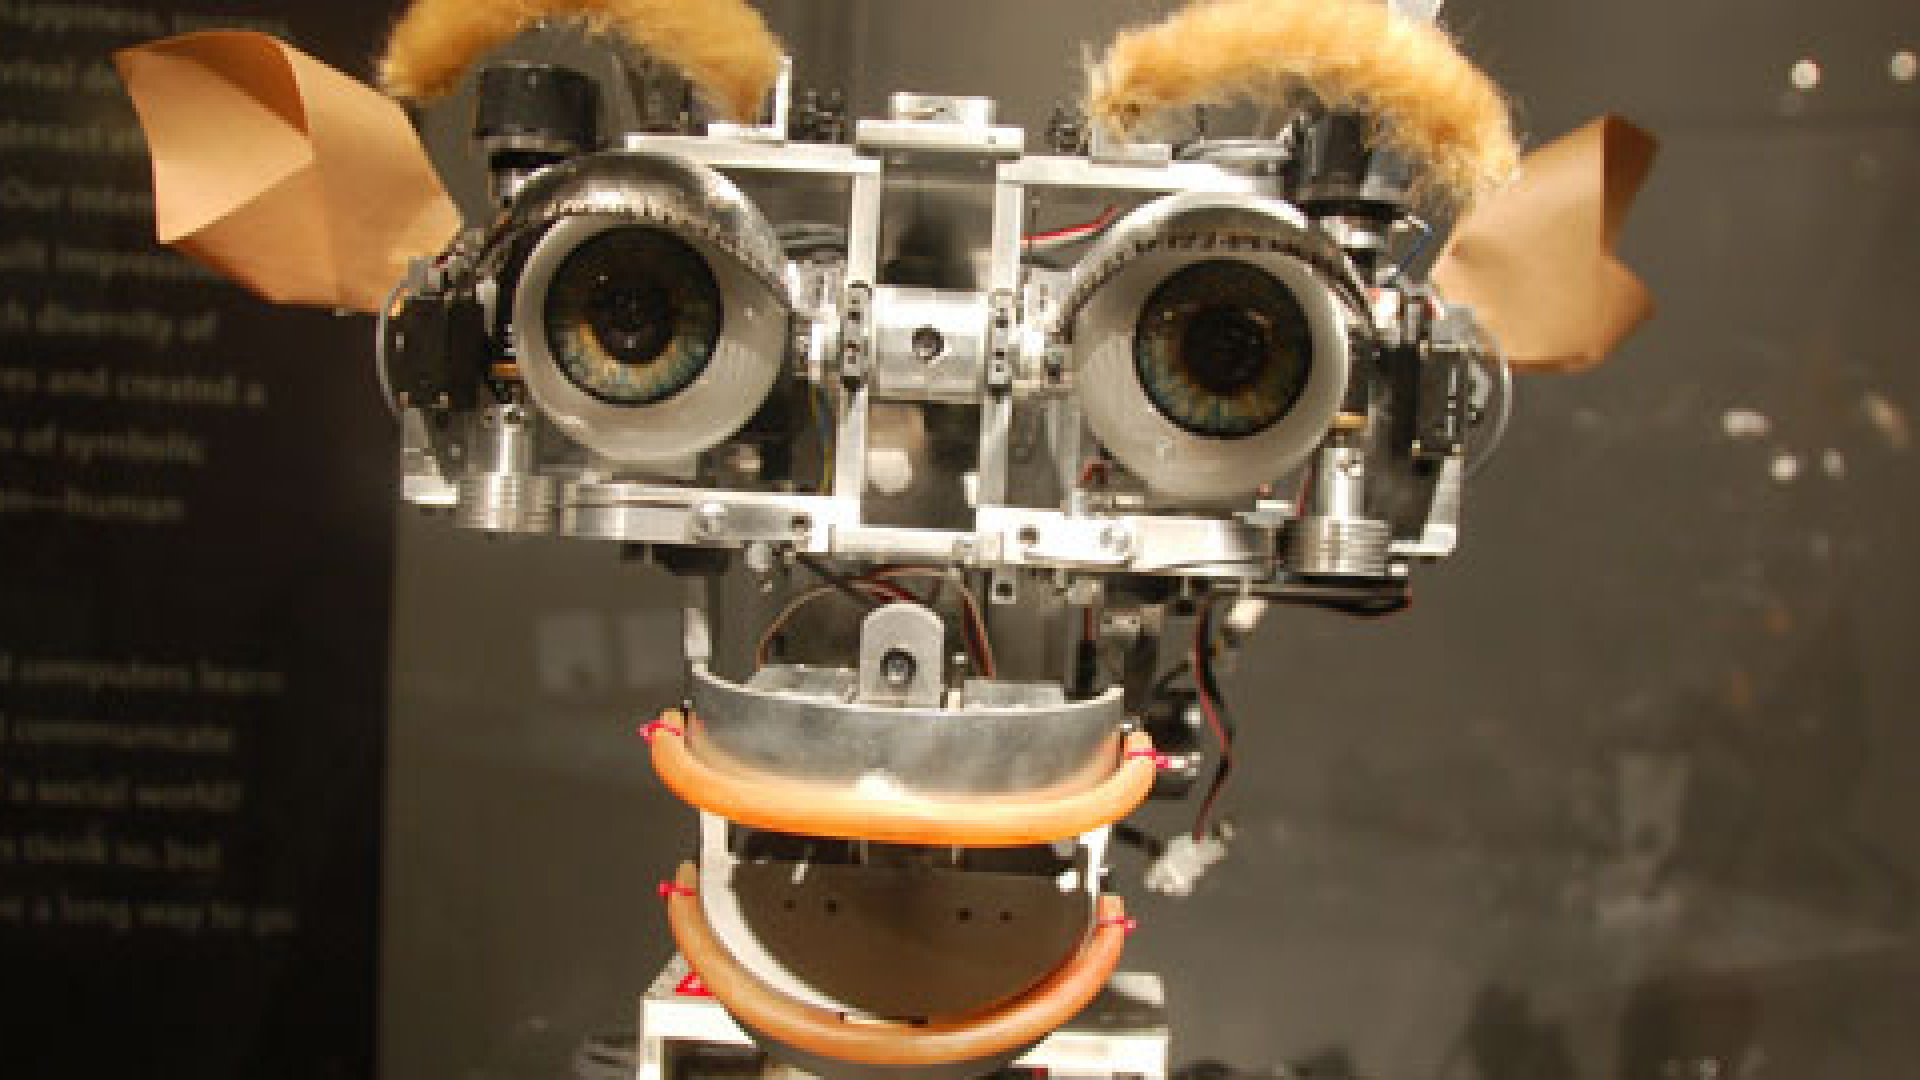 Kismet the robot at the MIT Museum.